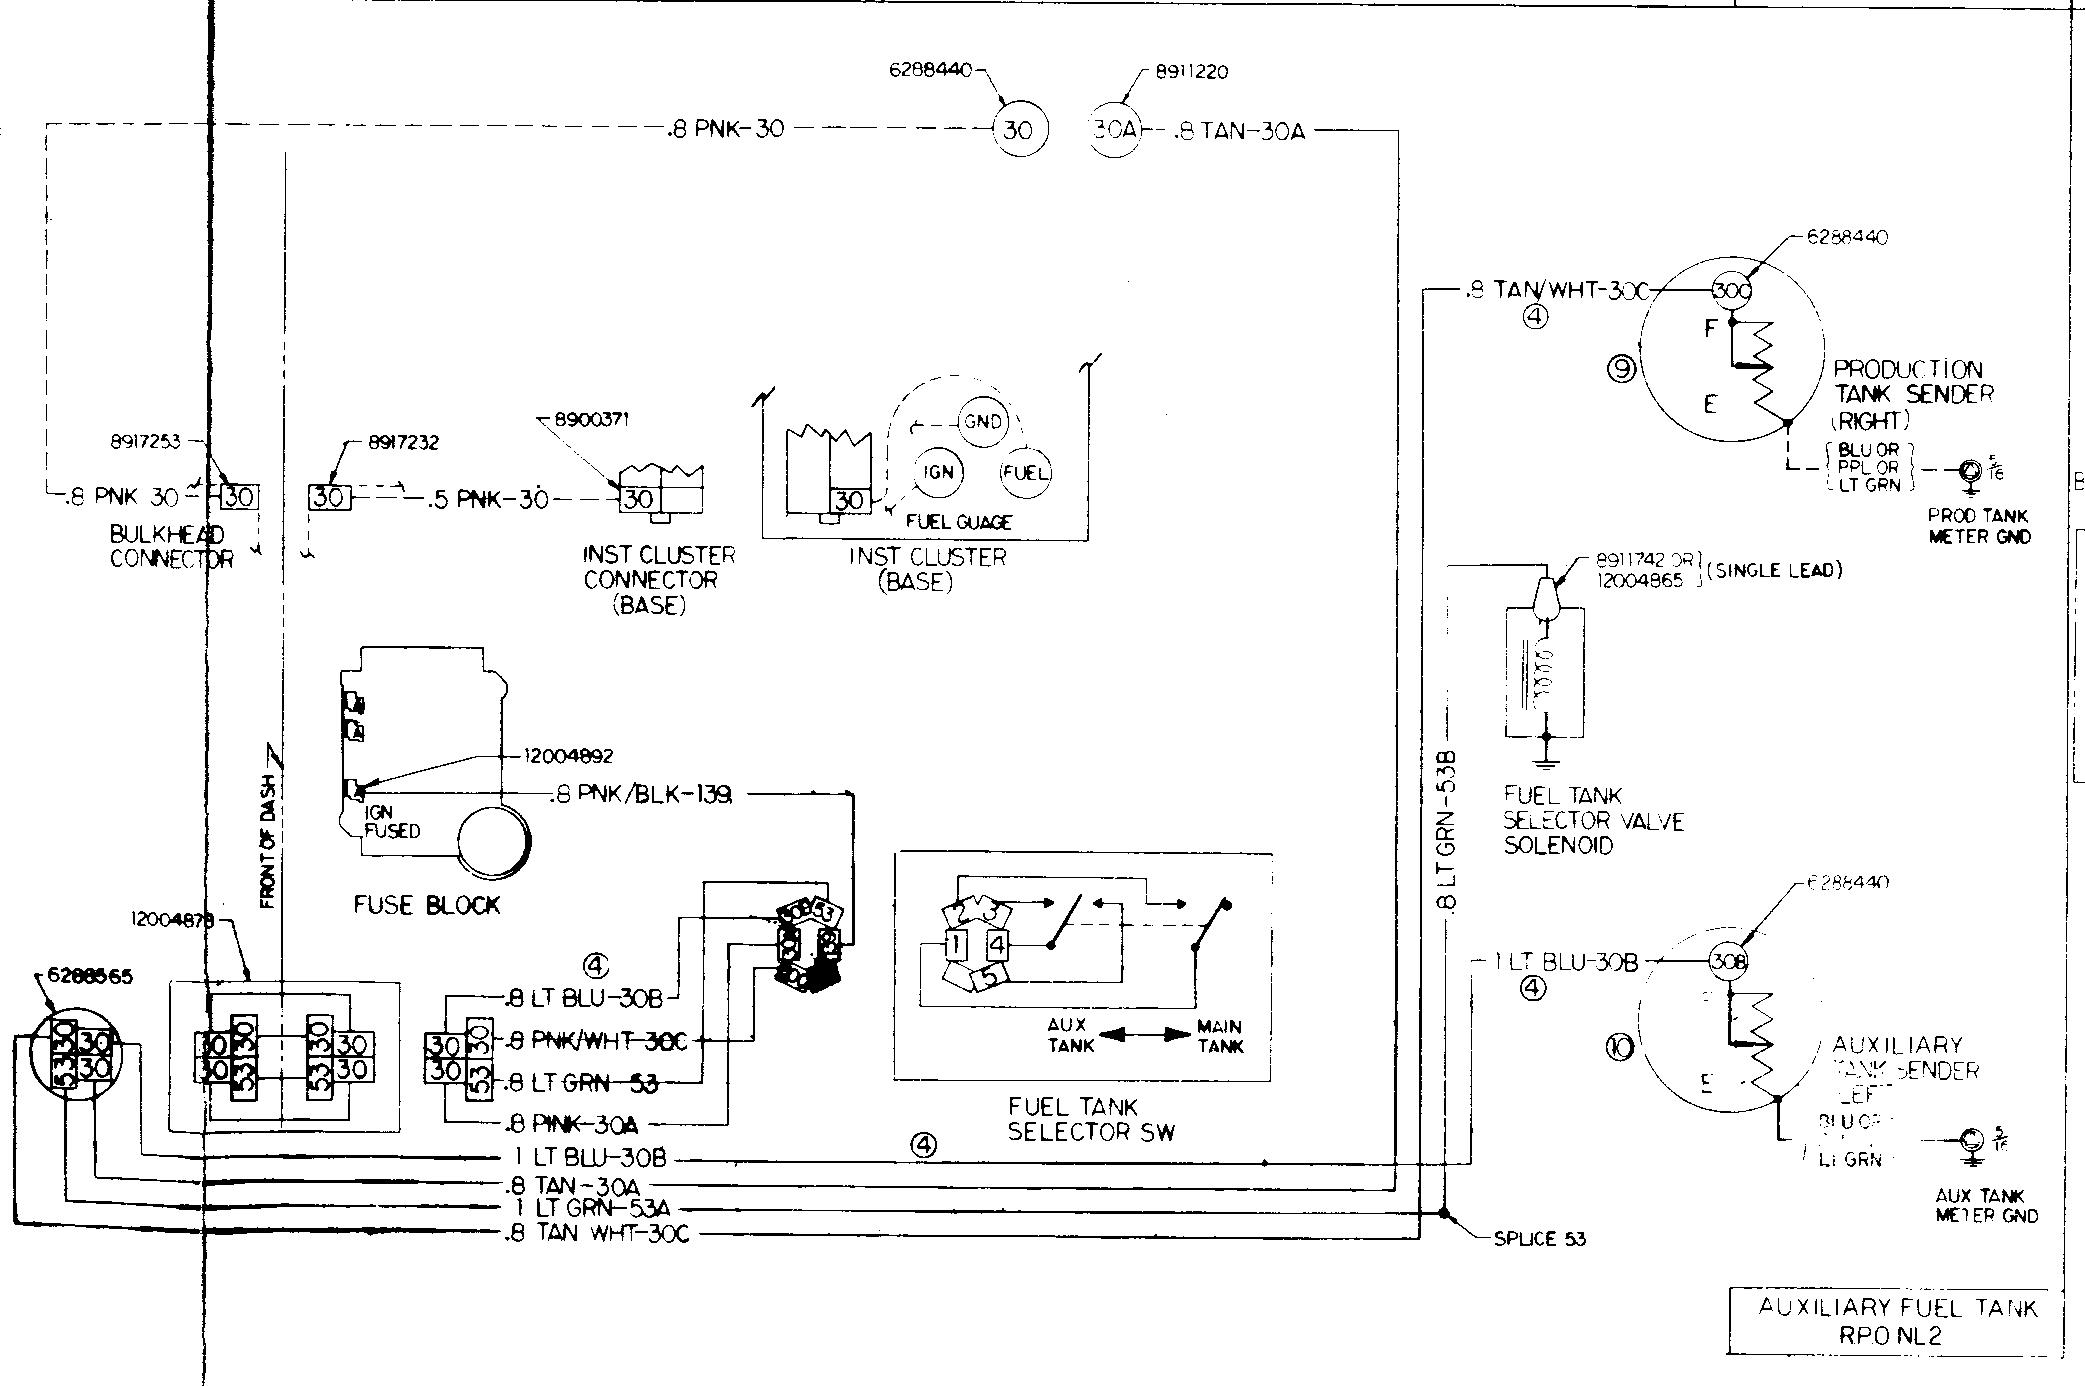 Click image for larger version  Name:aux fuel tank.JPG Views:98 Size:278.8 KB ID:19449